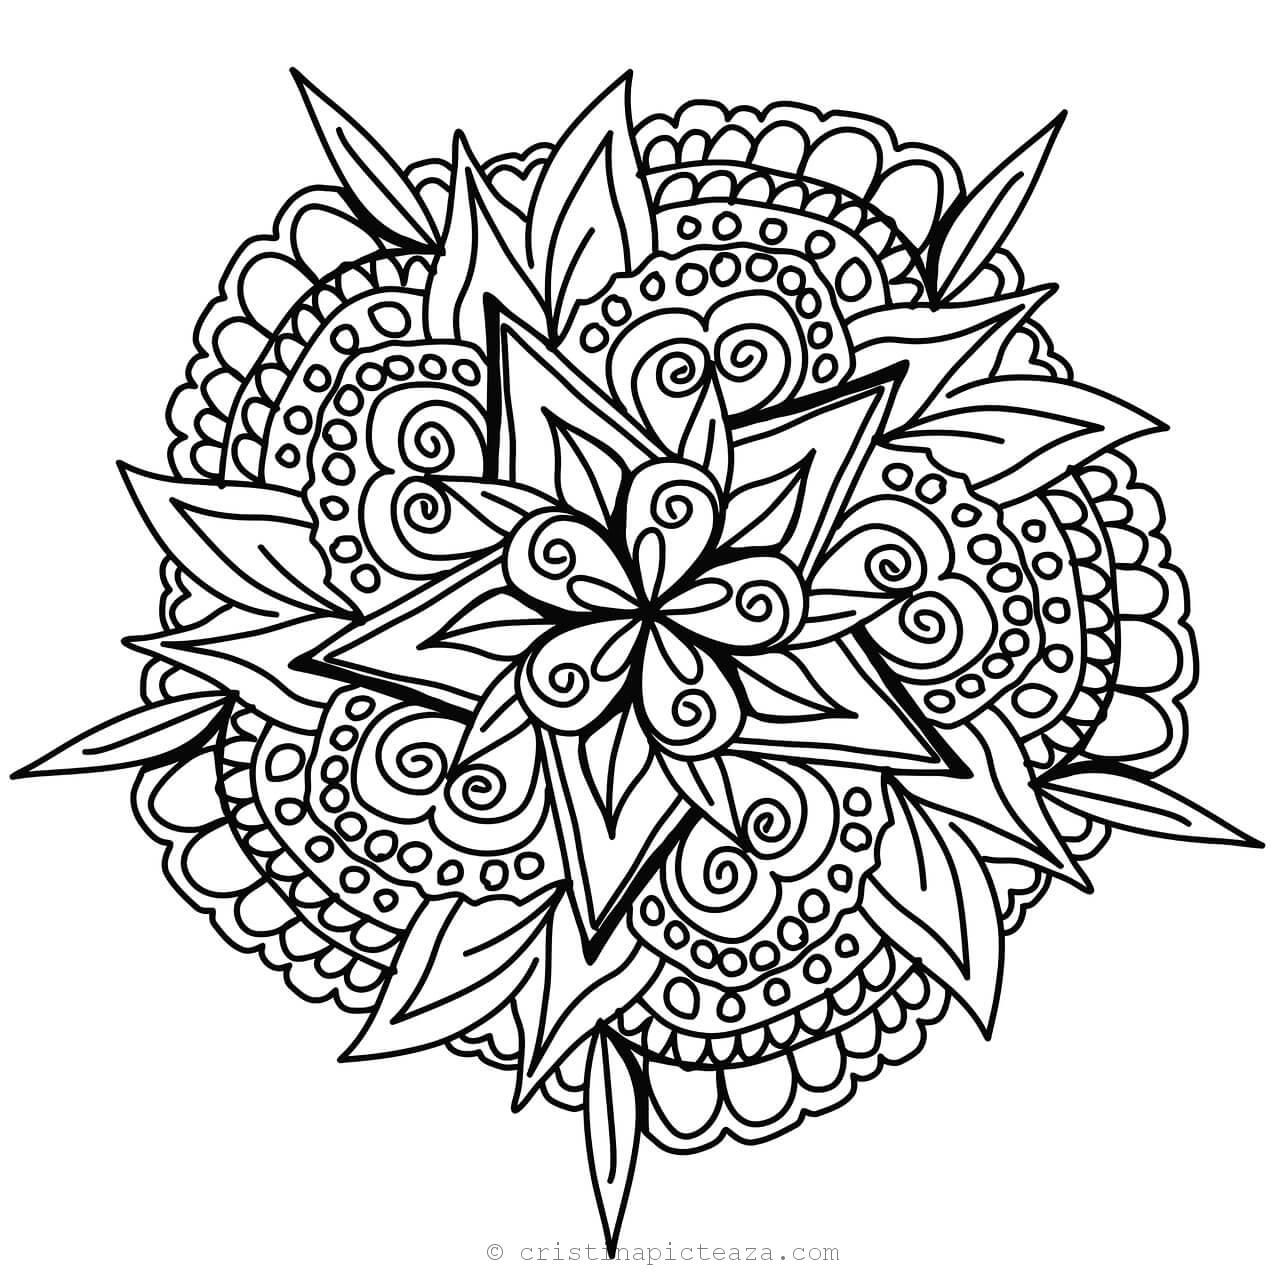 mandalas to color for adults get this online mandala coloring pages for adults 34136 to mandalas adults for color